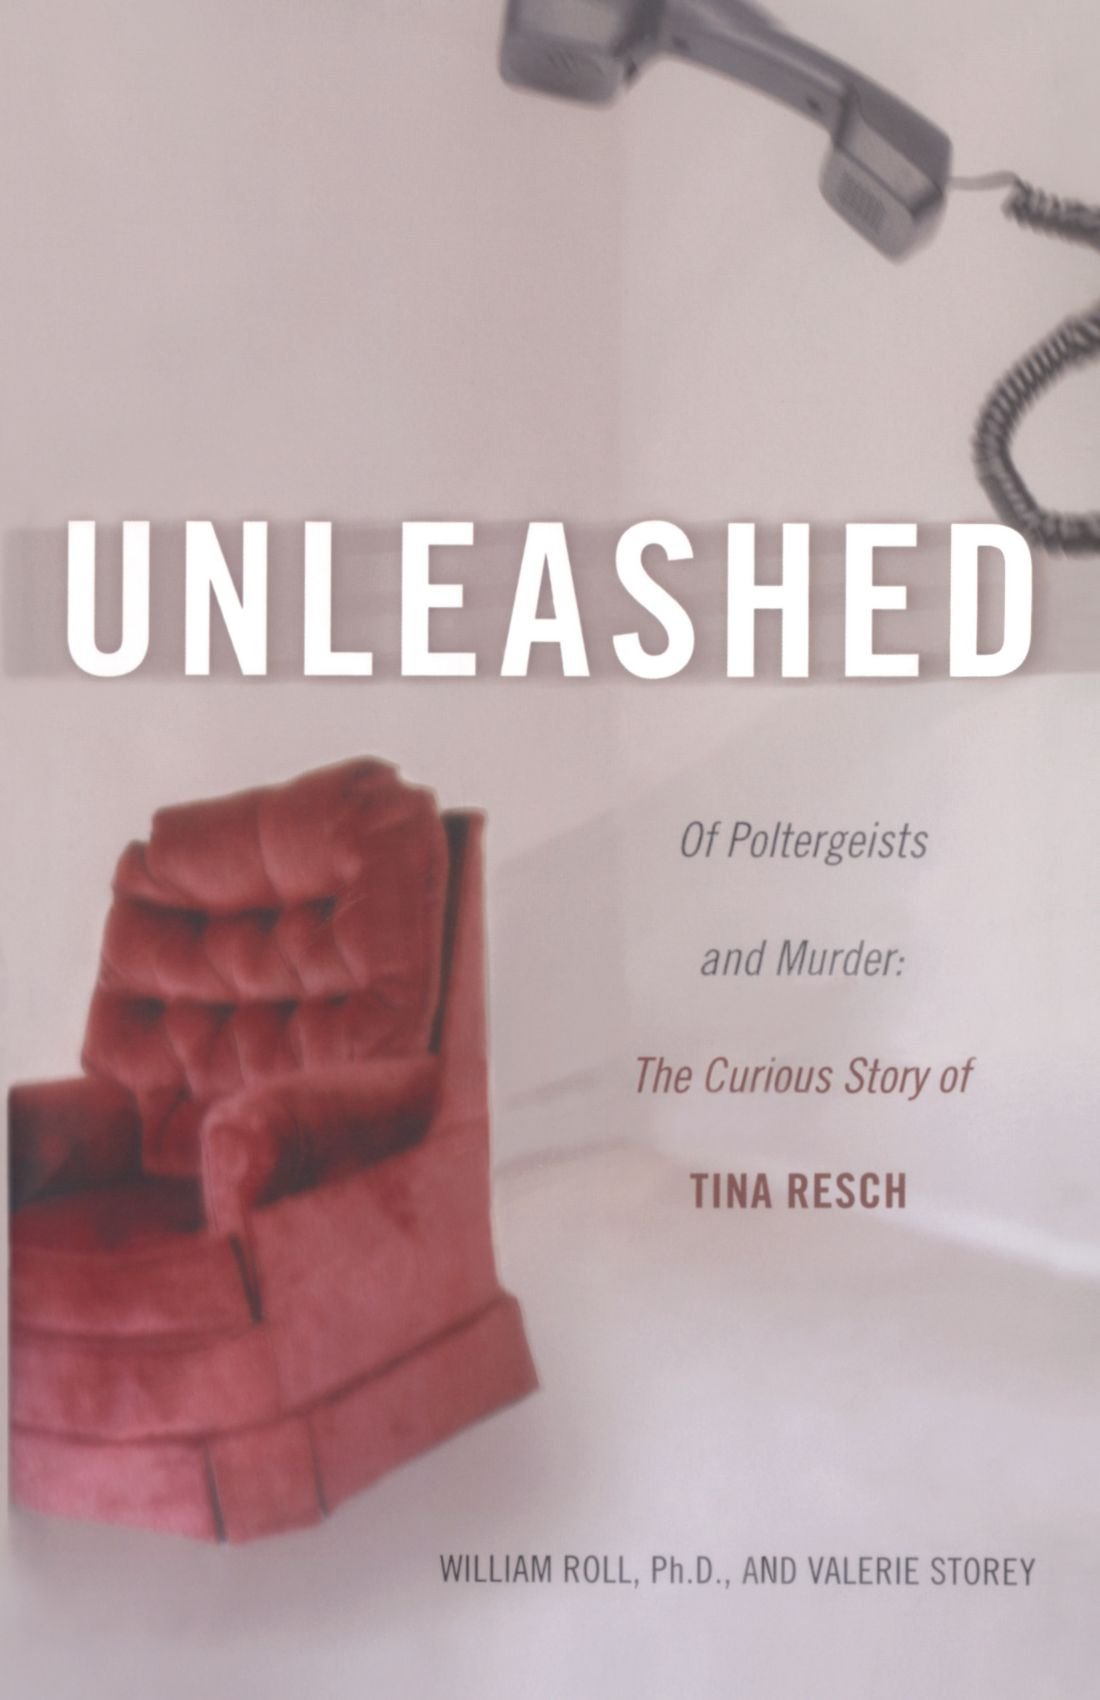 Unleashed of poltergeists and murder the curious story of tina unleashed of poltergeists and murder the curious story of tina resch william roll valerie storey 9780743482943 books amazon fandeluxe Document